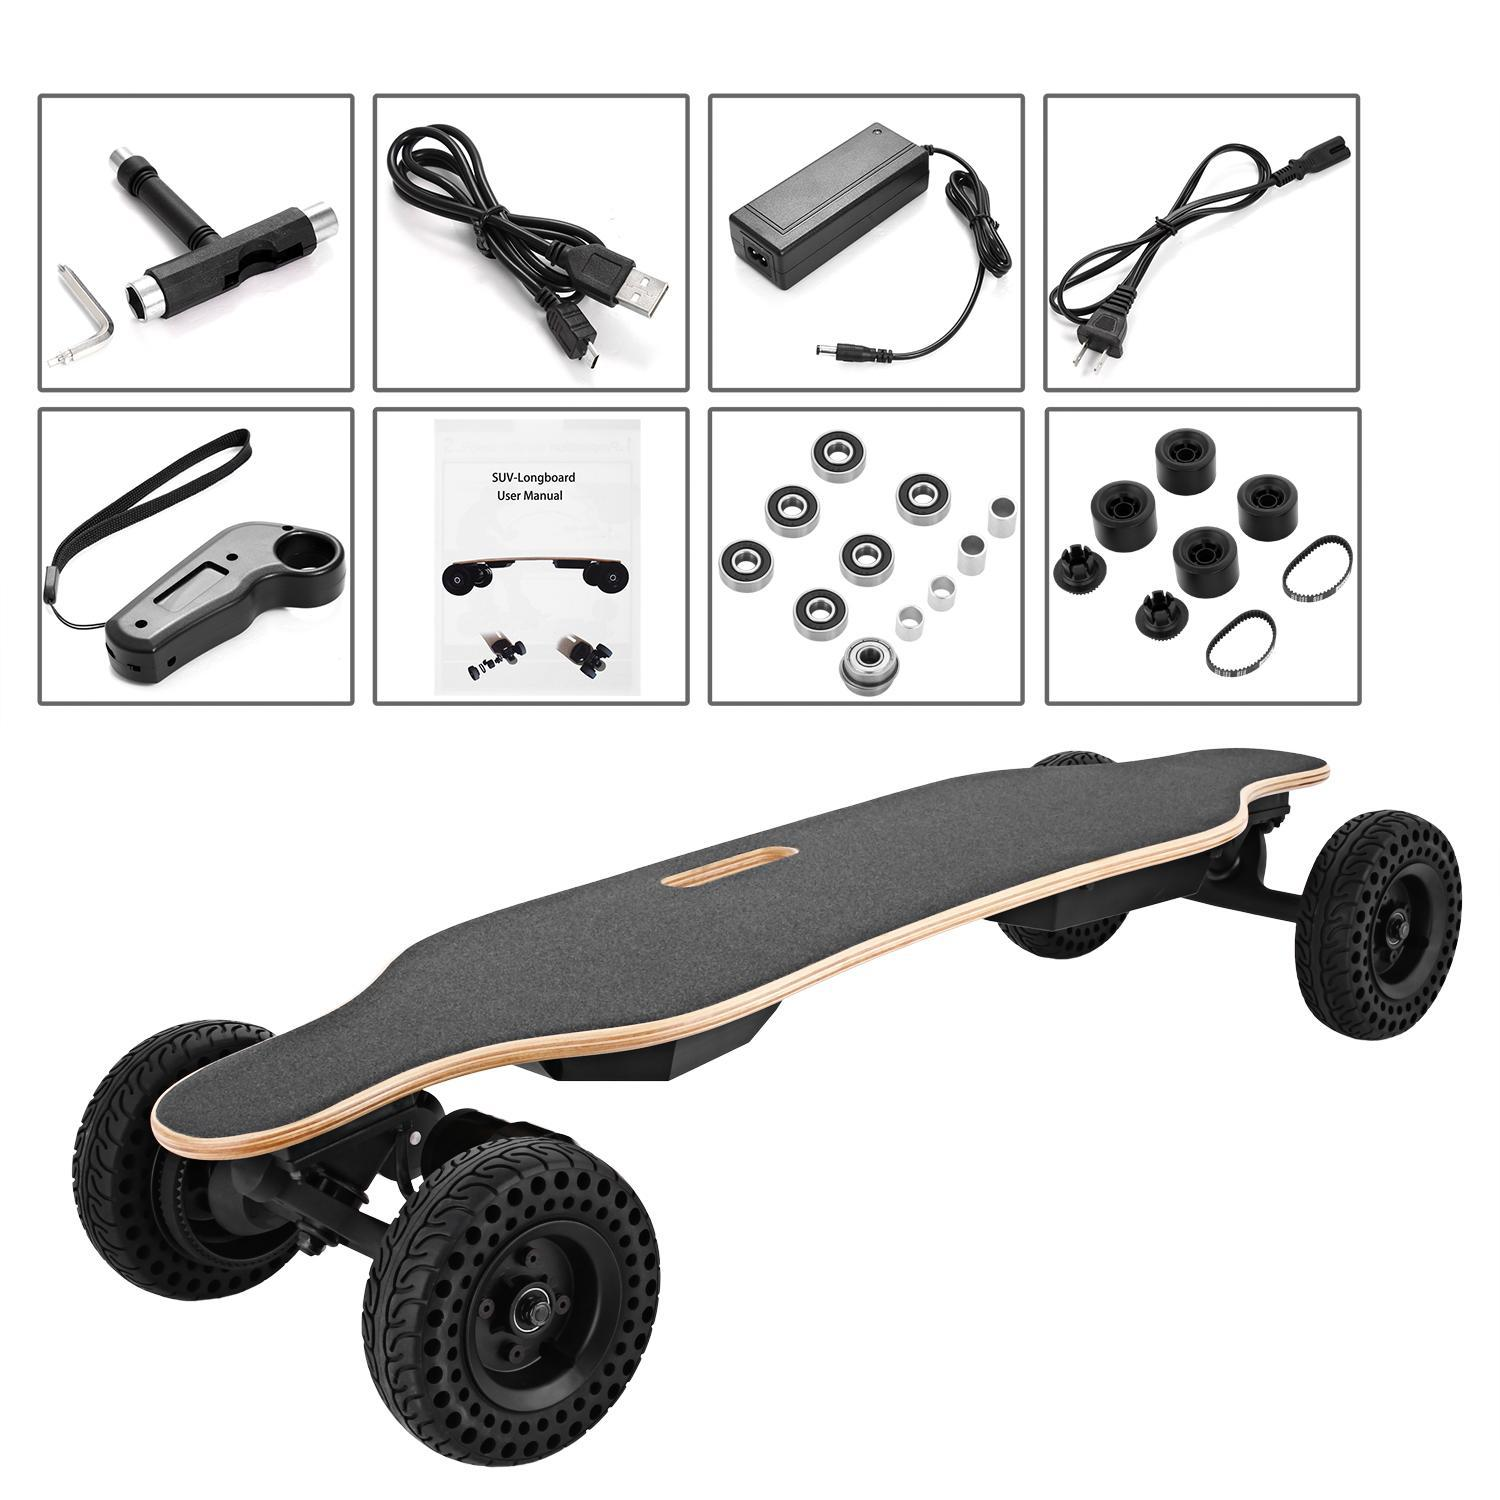 ual Motors 37inch Electric Skateboard with Wireless Handheld Remote Control SUV-Longboard BTC by